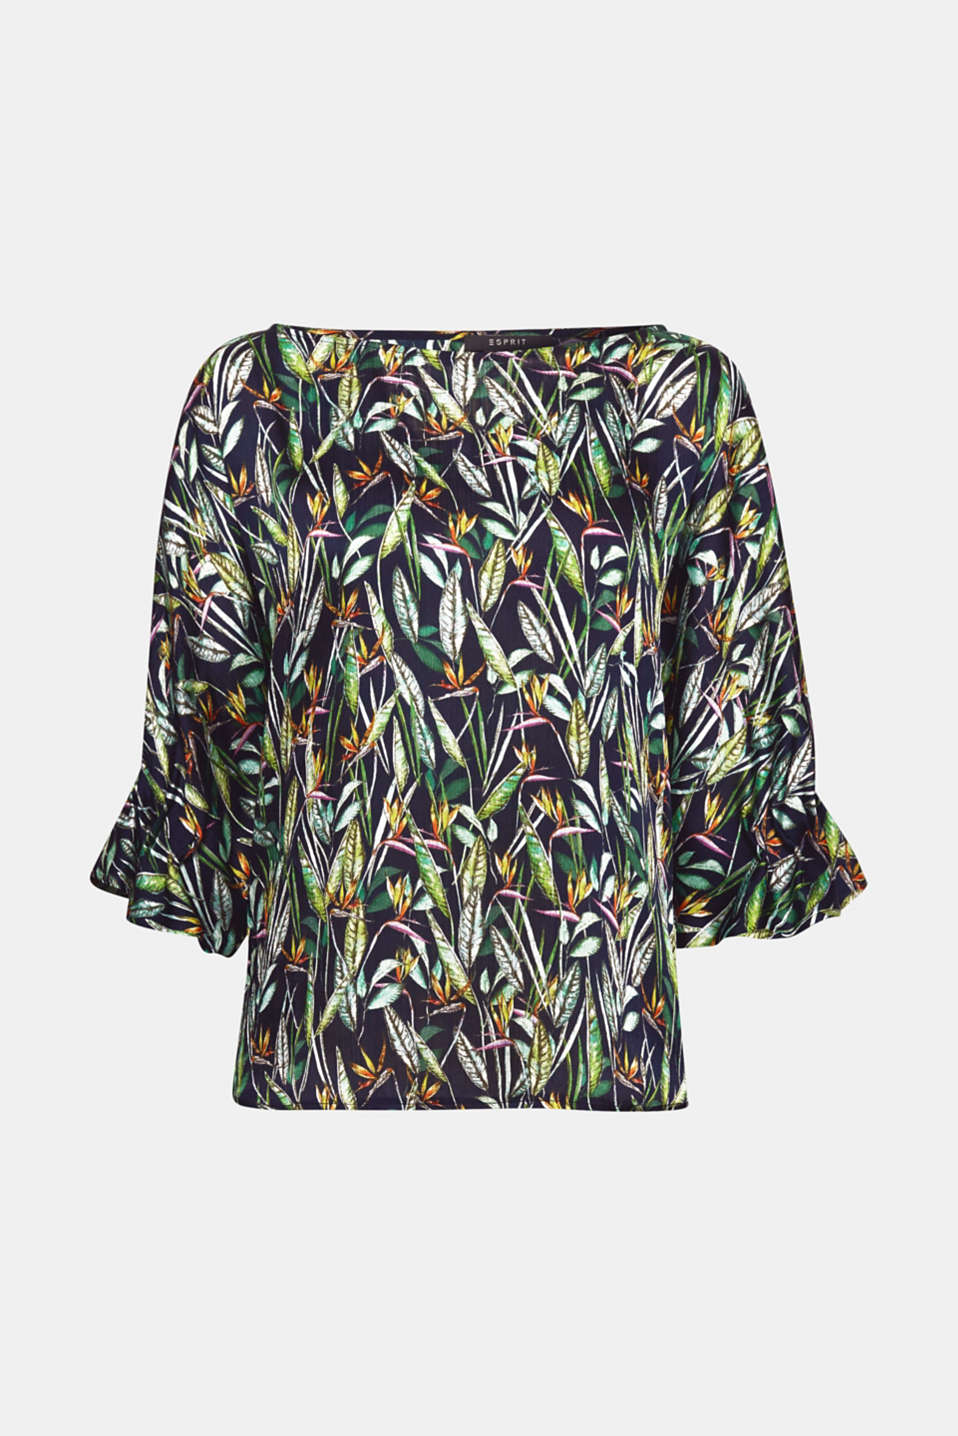 Tropical feeling! This blouse with a colourful all-over tropical print and three-quarter length, flared sleeves perks up your outfit perfectly.